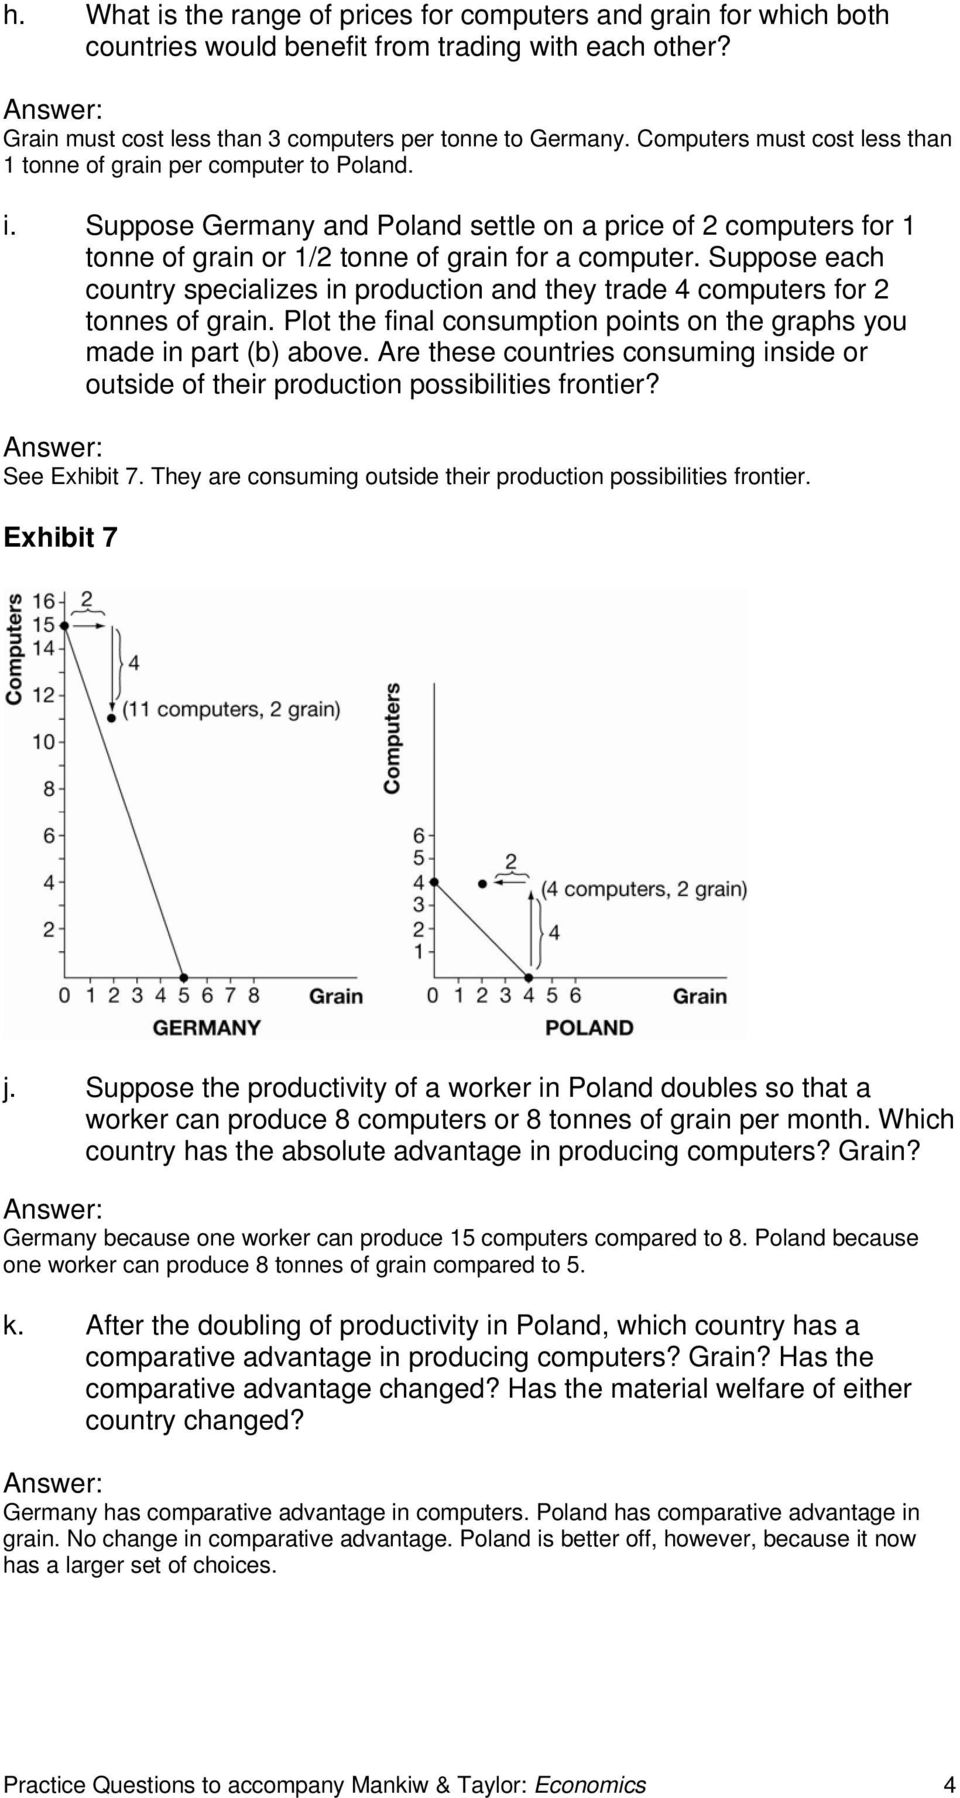 further  likewise 2 THE ECONOMIC PROBLEM in addition  moreover ppf worksheet   Production Possibilities Frontier PPF Worksheet Name likewise Quiz   Worksheet   Principles of Economics   Study moreover 2 THE ECONOMIC PROBLEM additionally Production Possibilities Frontier Worksheet Answers   Q O U N moreover  in addition 2 2 The Production Possibilities Frontier and Social Choices   Texas additionally  together with Fillable Online troup Production Possibilities Frontier PPF also Chapter 2 1  Identify the parts of the circular flow diagram further a  Draw Angela's production possibilities frontier for pots and mugs additionally Production Possibility Curve   Economics besides IGNMENT 2 ANSWER KEY. on production possibilities frontier worksheet answers